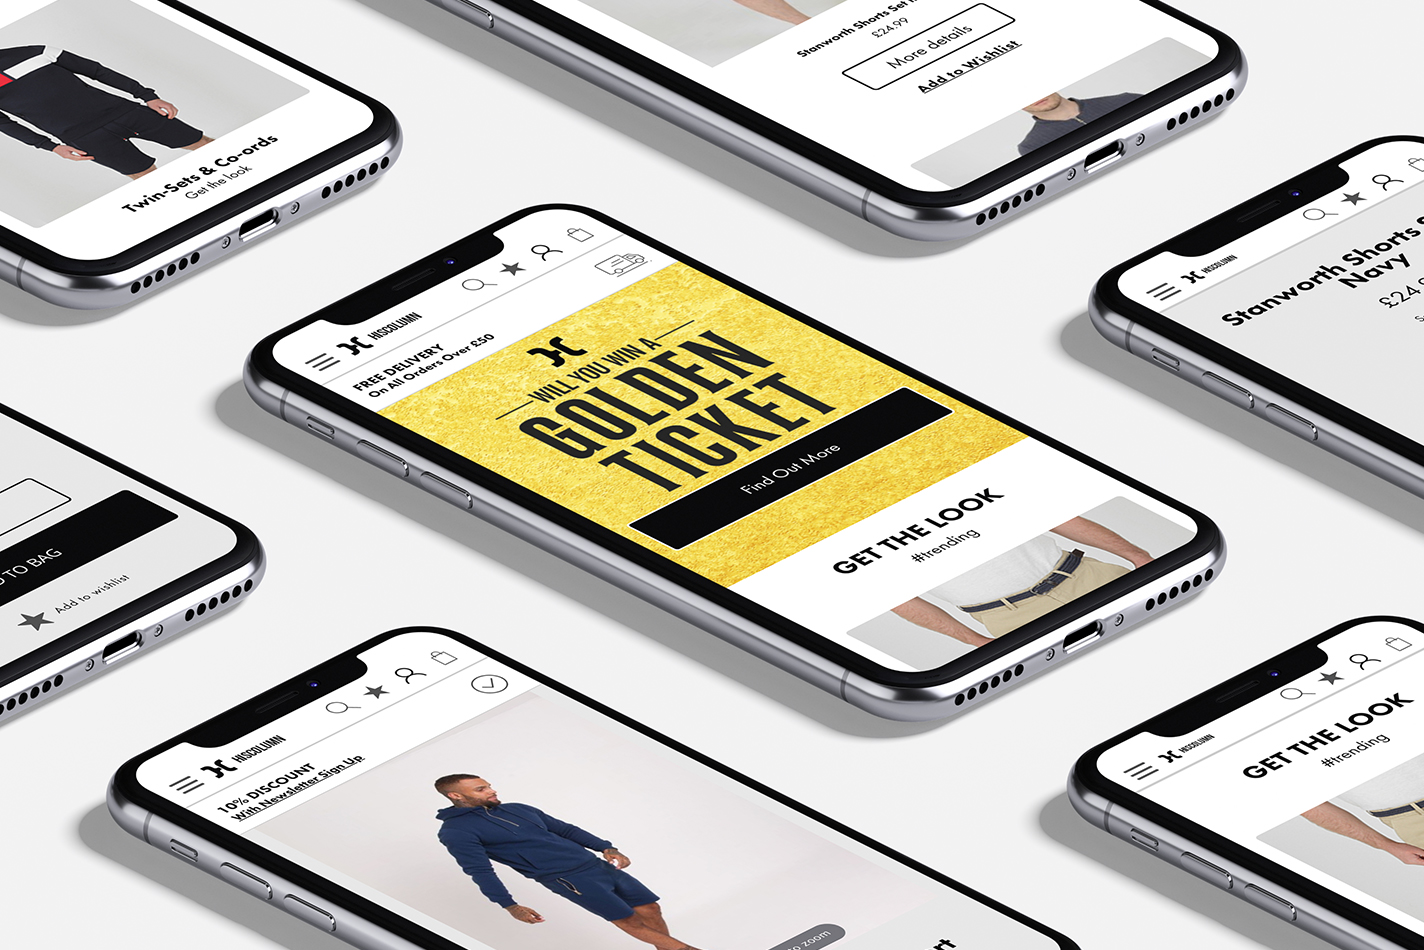 Ecommerce assets designed by Digital Six